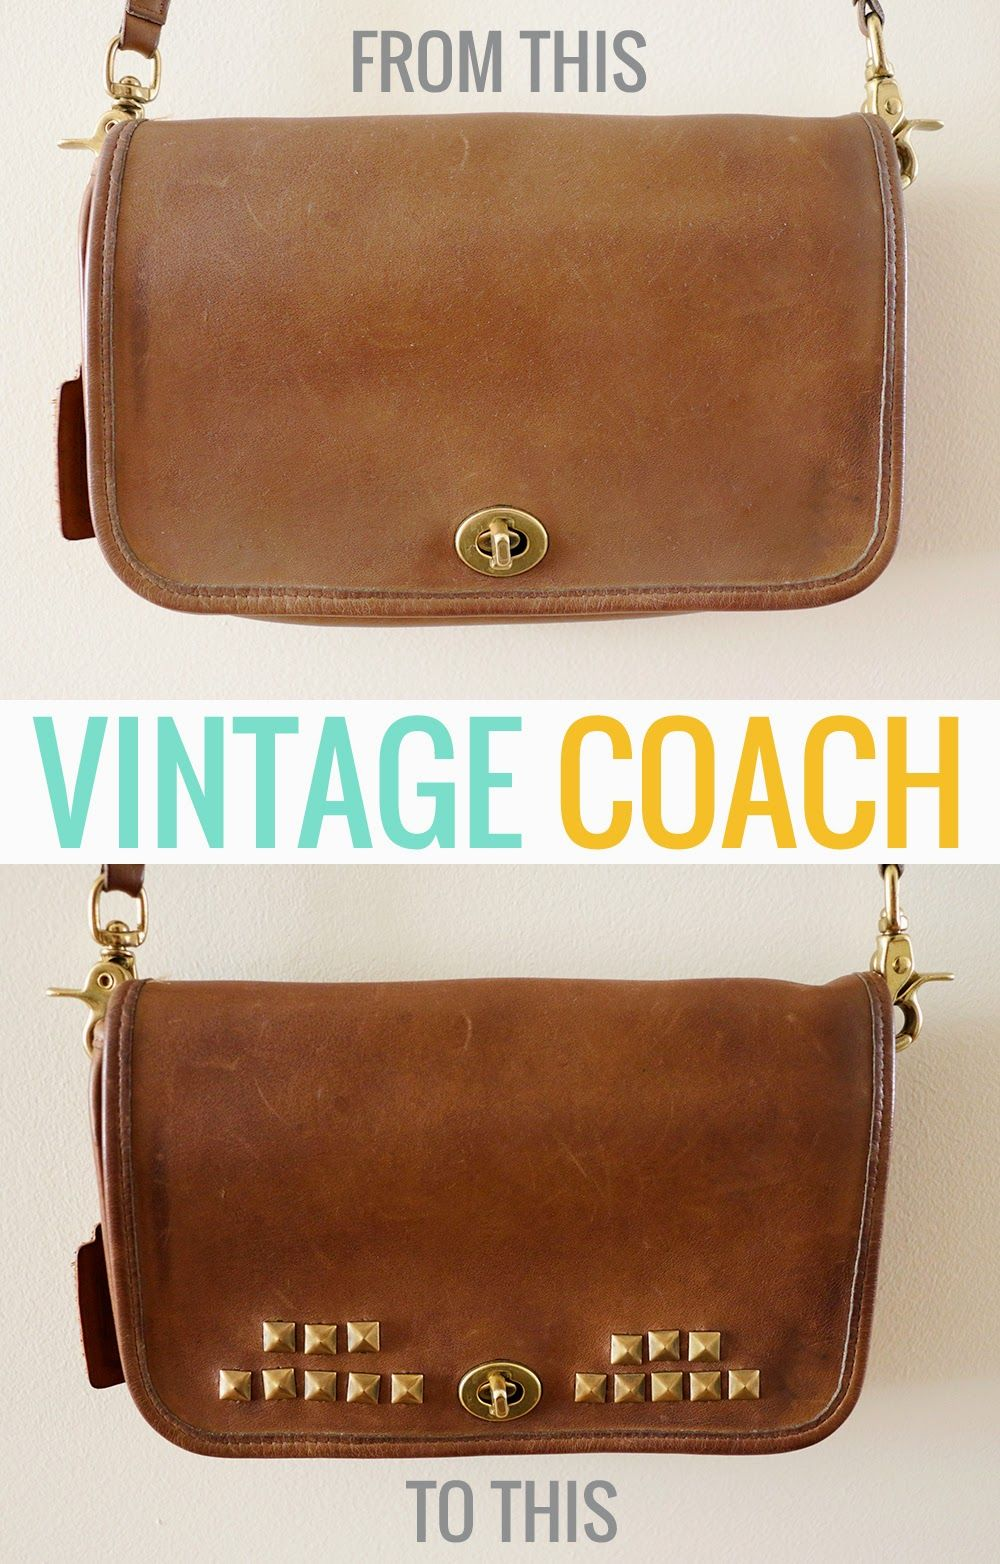 f3b7db227e9c Thriftables: Vintage Coach Purse Makeover. Turn a dried-out vintage leather  purse into a beautiful, worn-in studded bag.